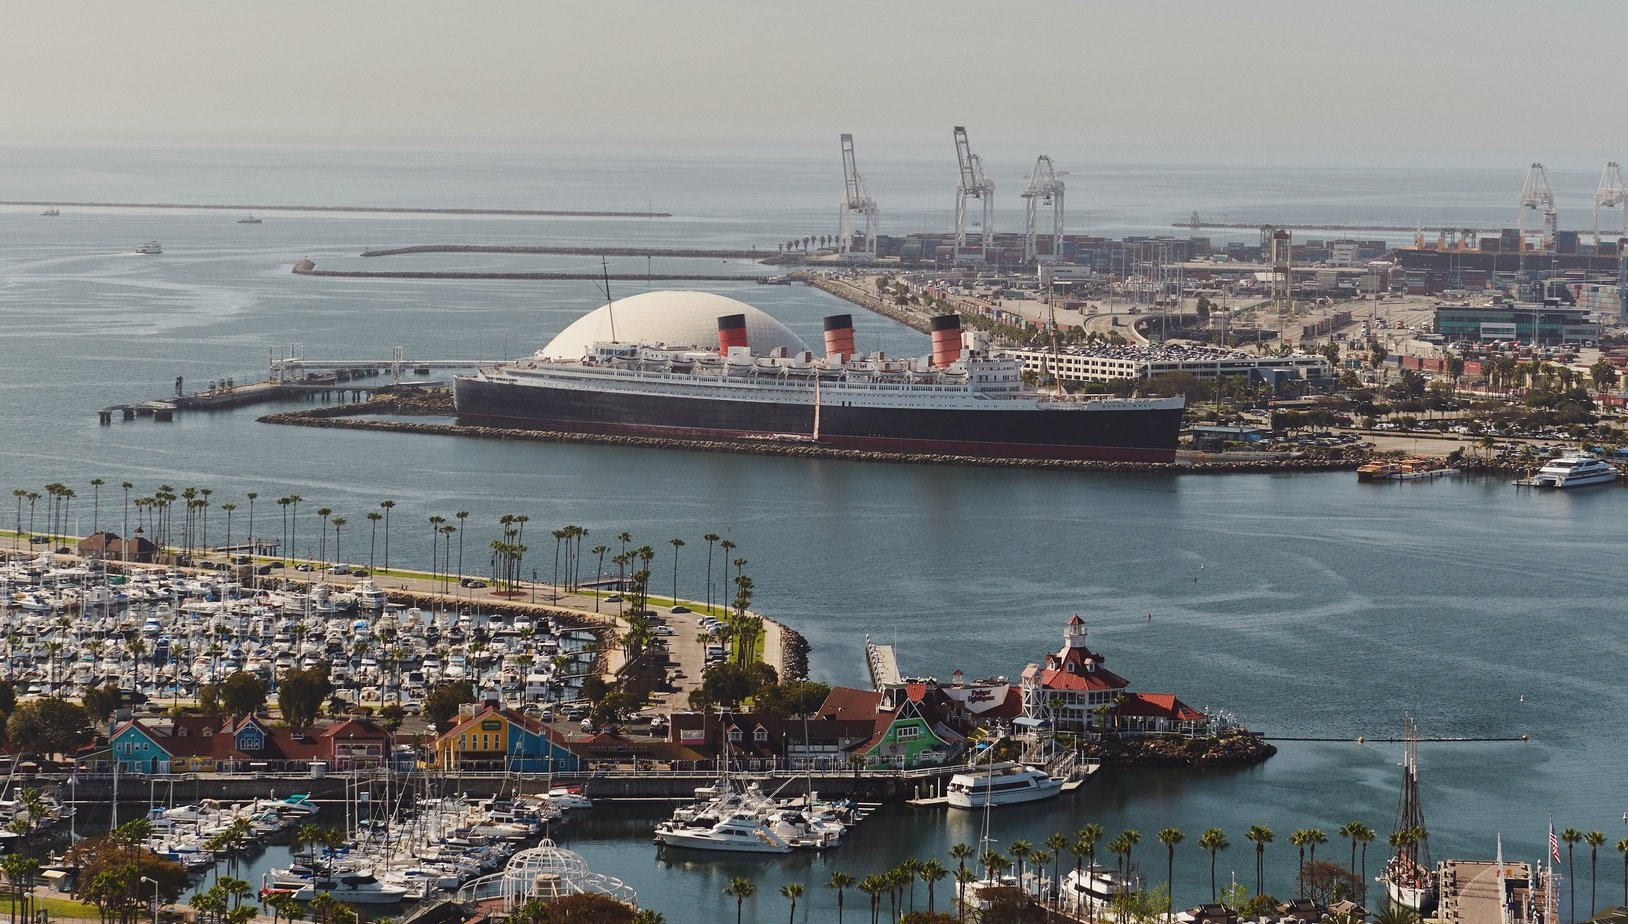 Queensway Bay in Long Beach, Calif., with the Queen Mary and docks in the distance. A $250 million entertainment and hotel complex is planned for the waterfront next to the Queen Mary. Credit Jake Michaels for The New York Times